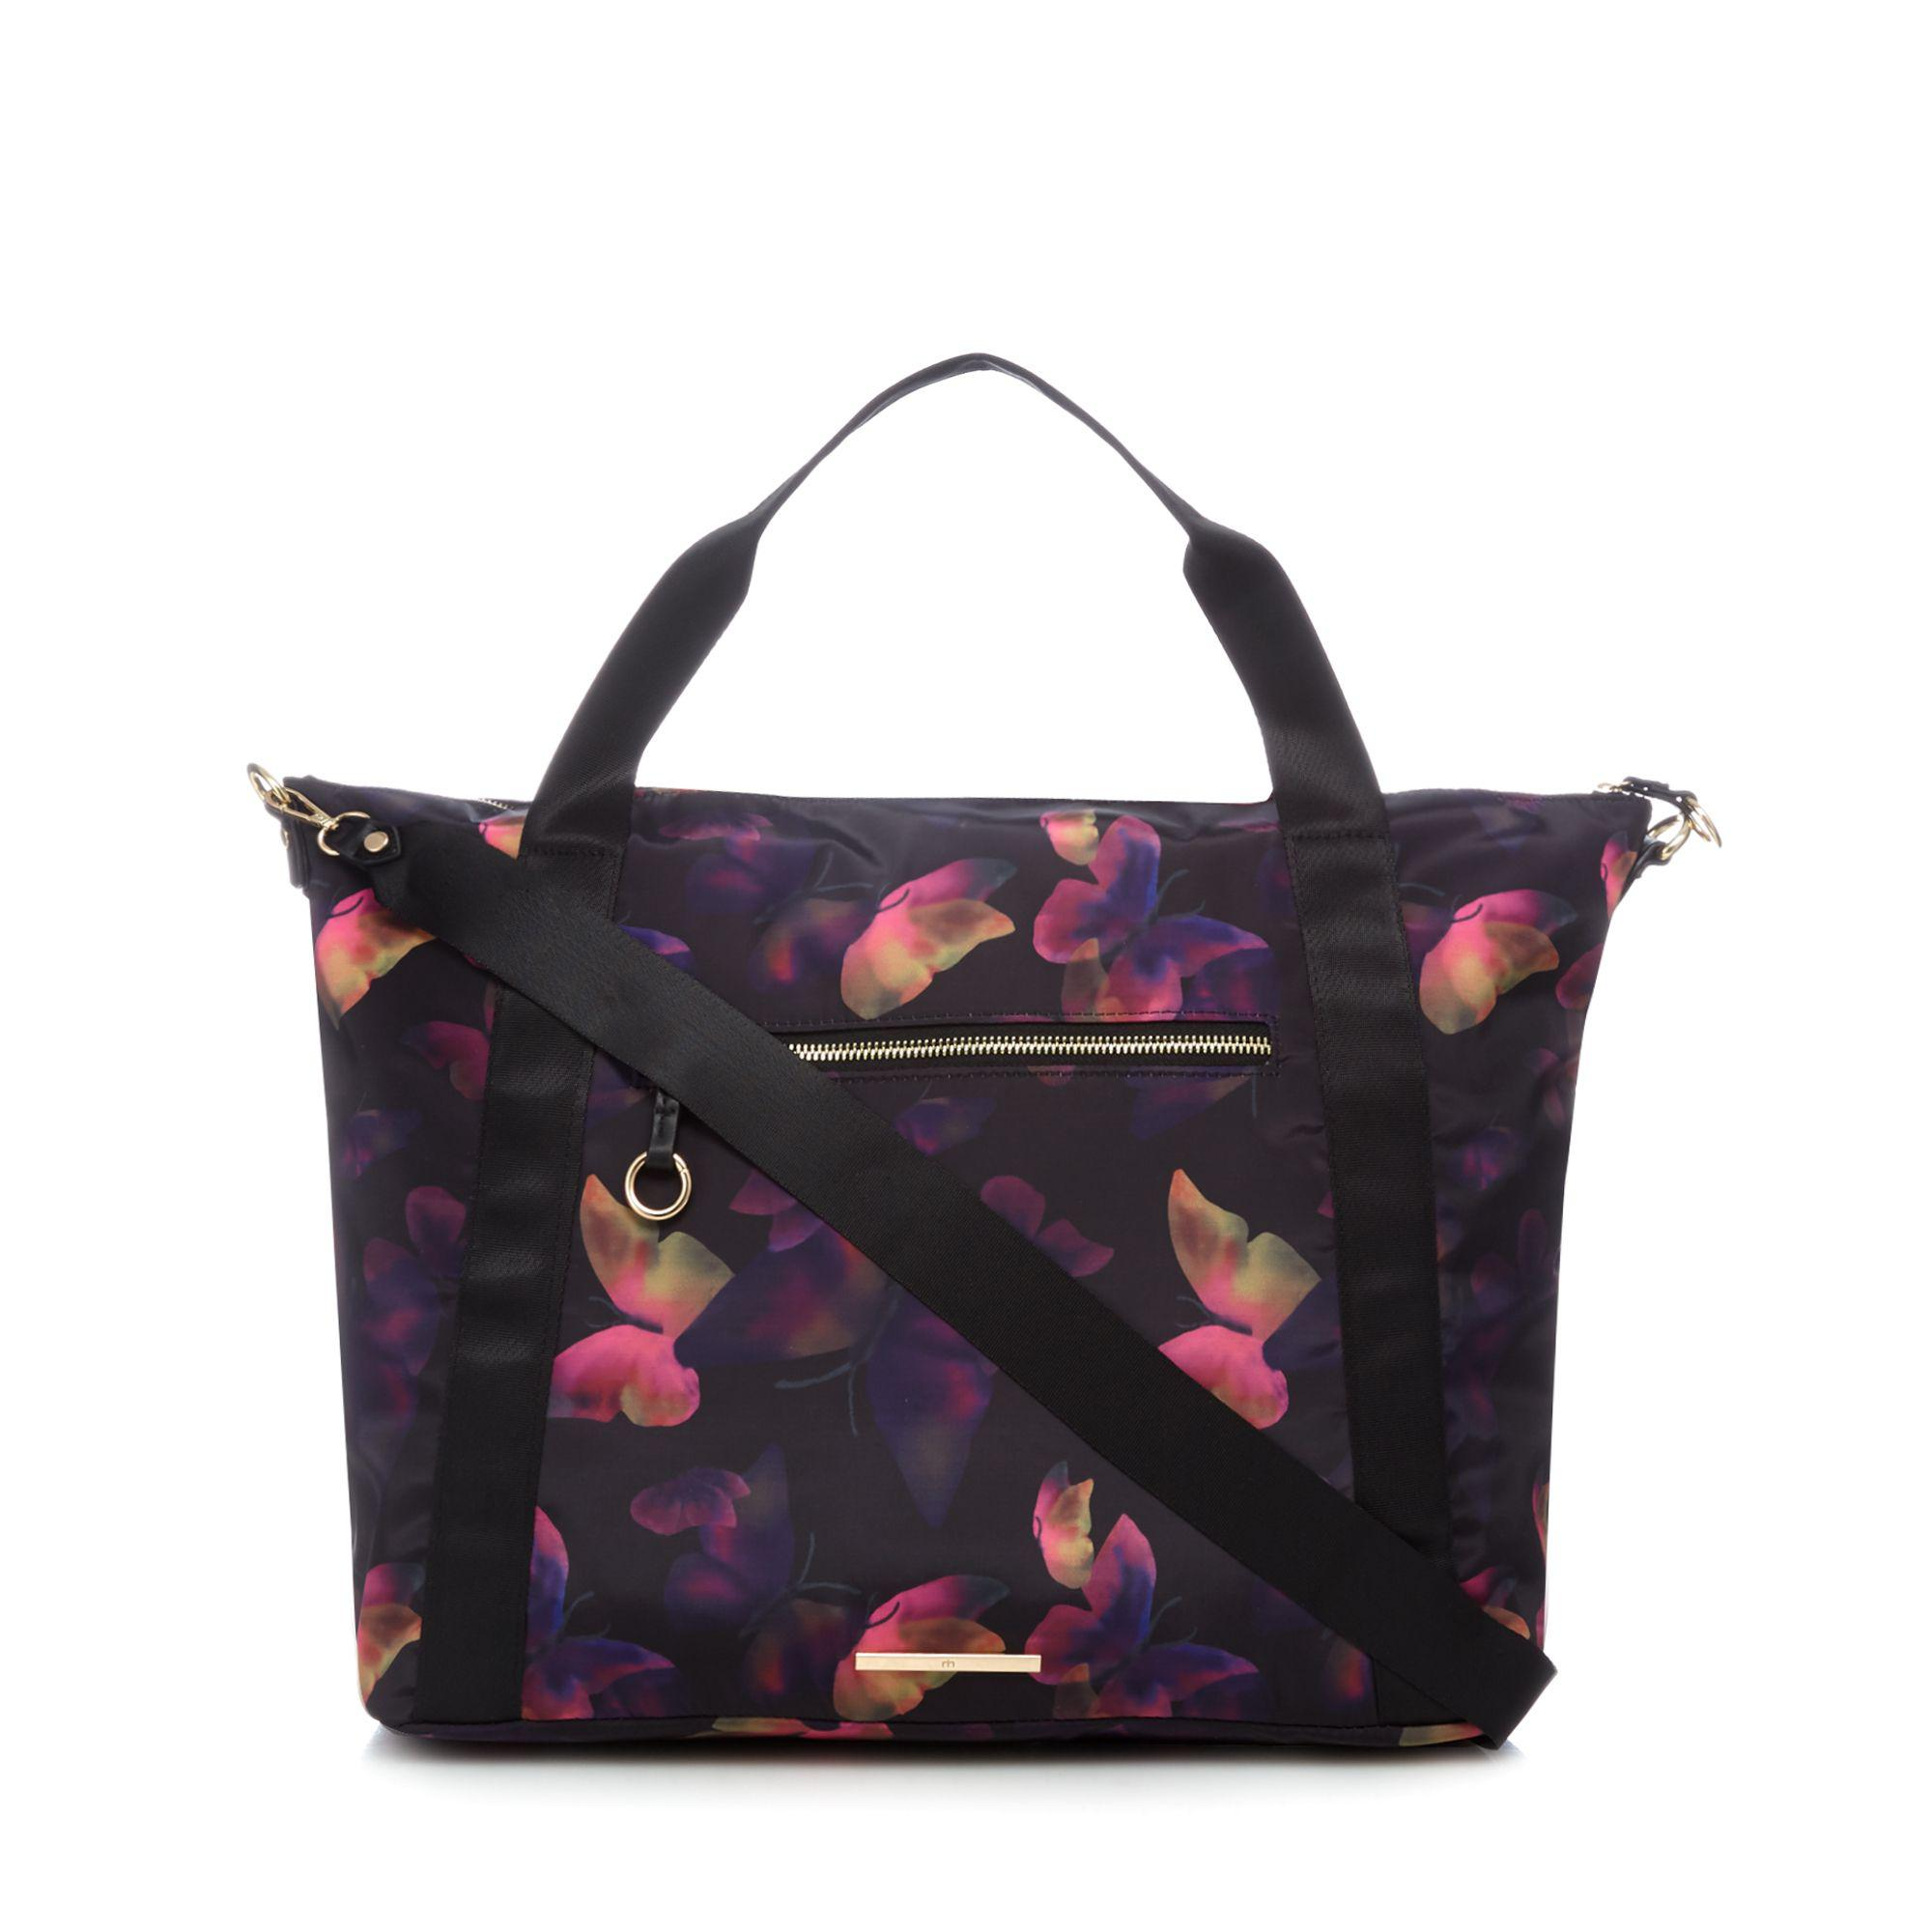 5325e6e9063d Red Herring Multi-coloured Floral Print Large Tote Bag - Lyst